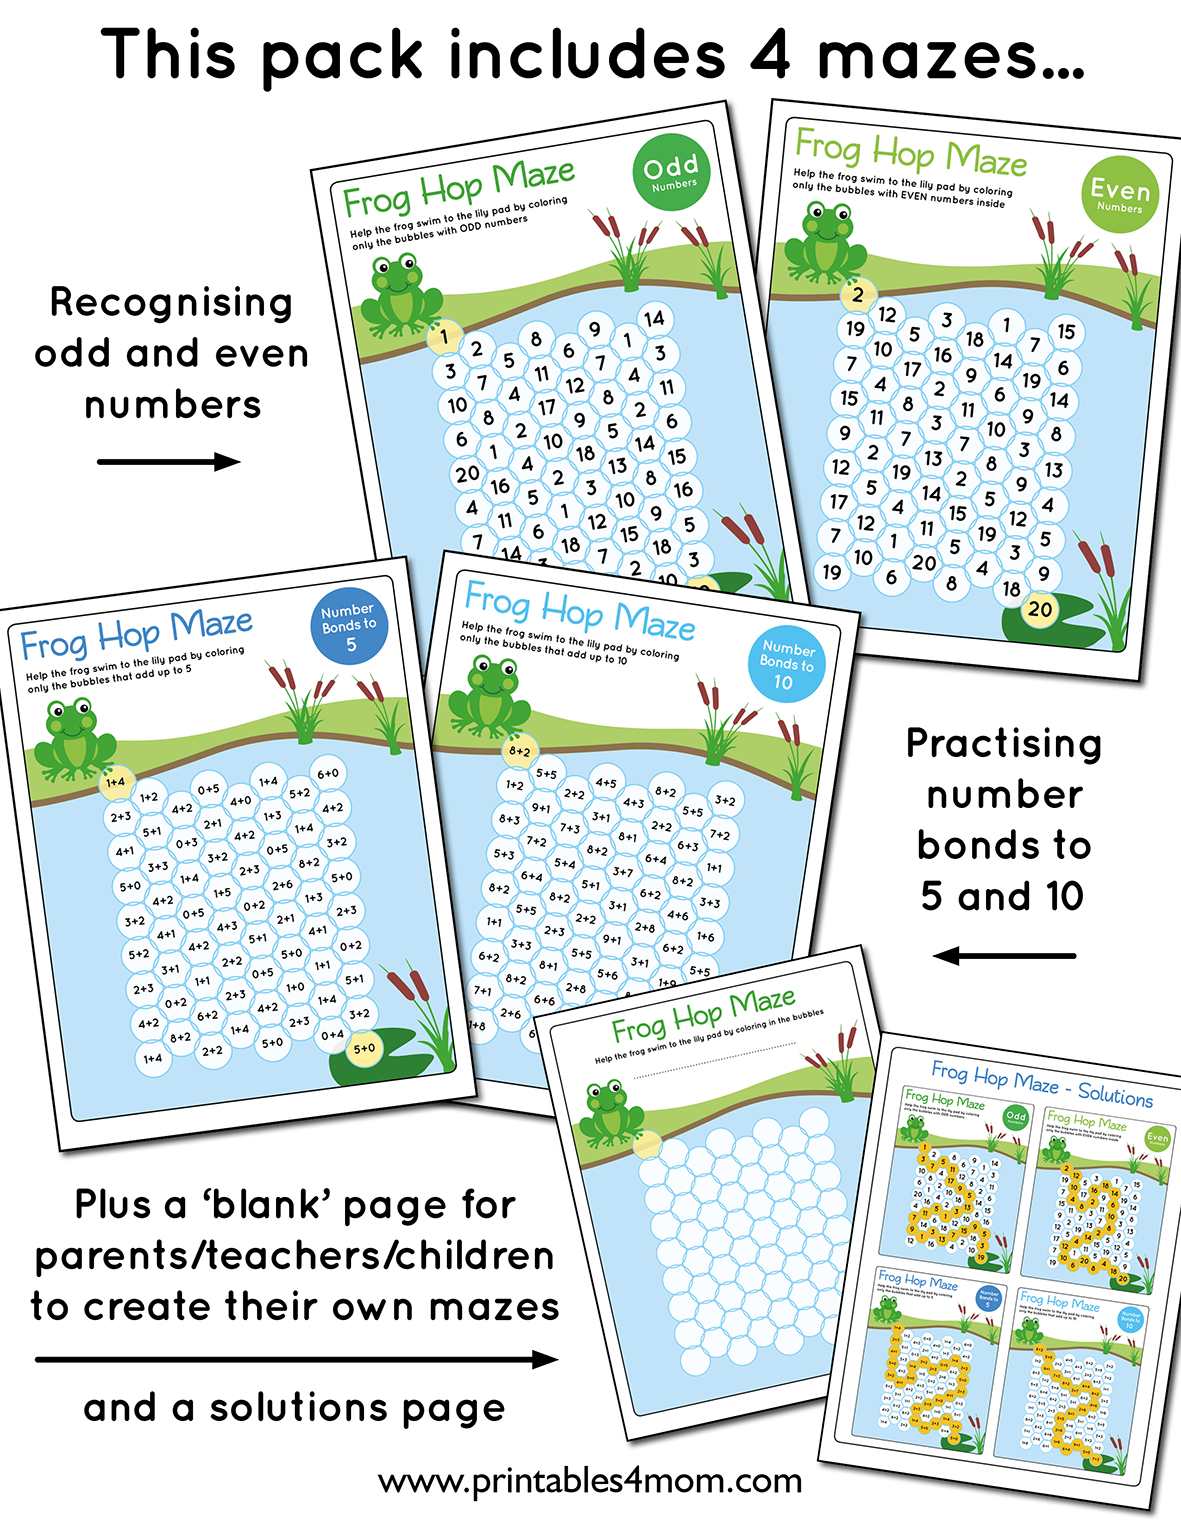 Frog Hop Maze Early Math Games Education for Kindergarten